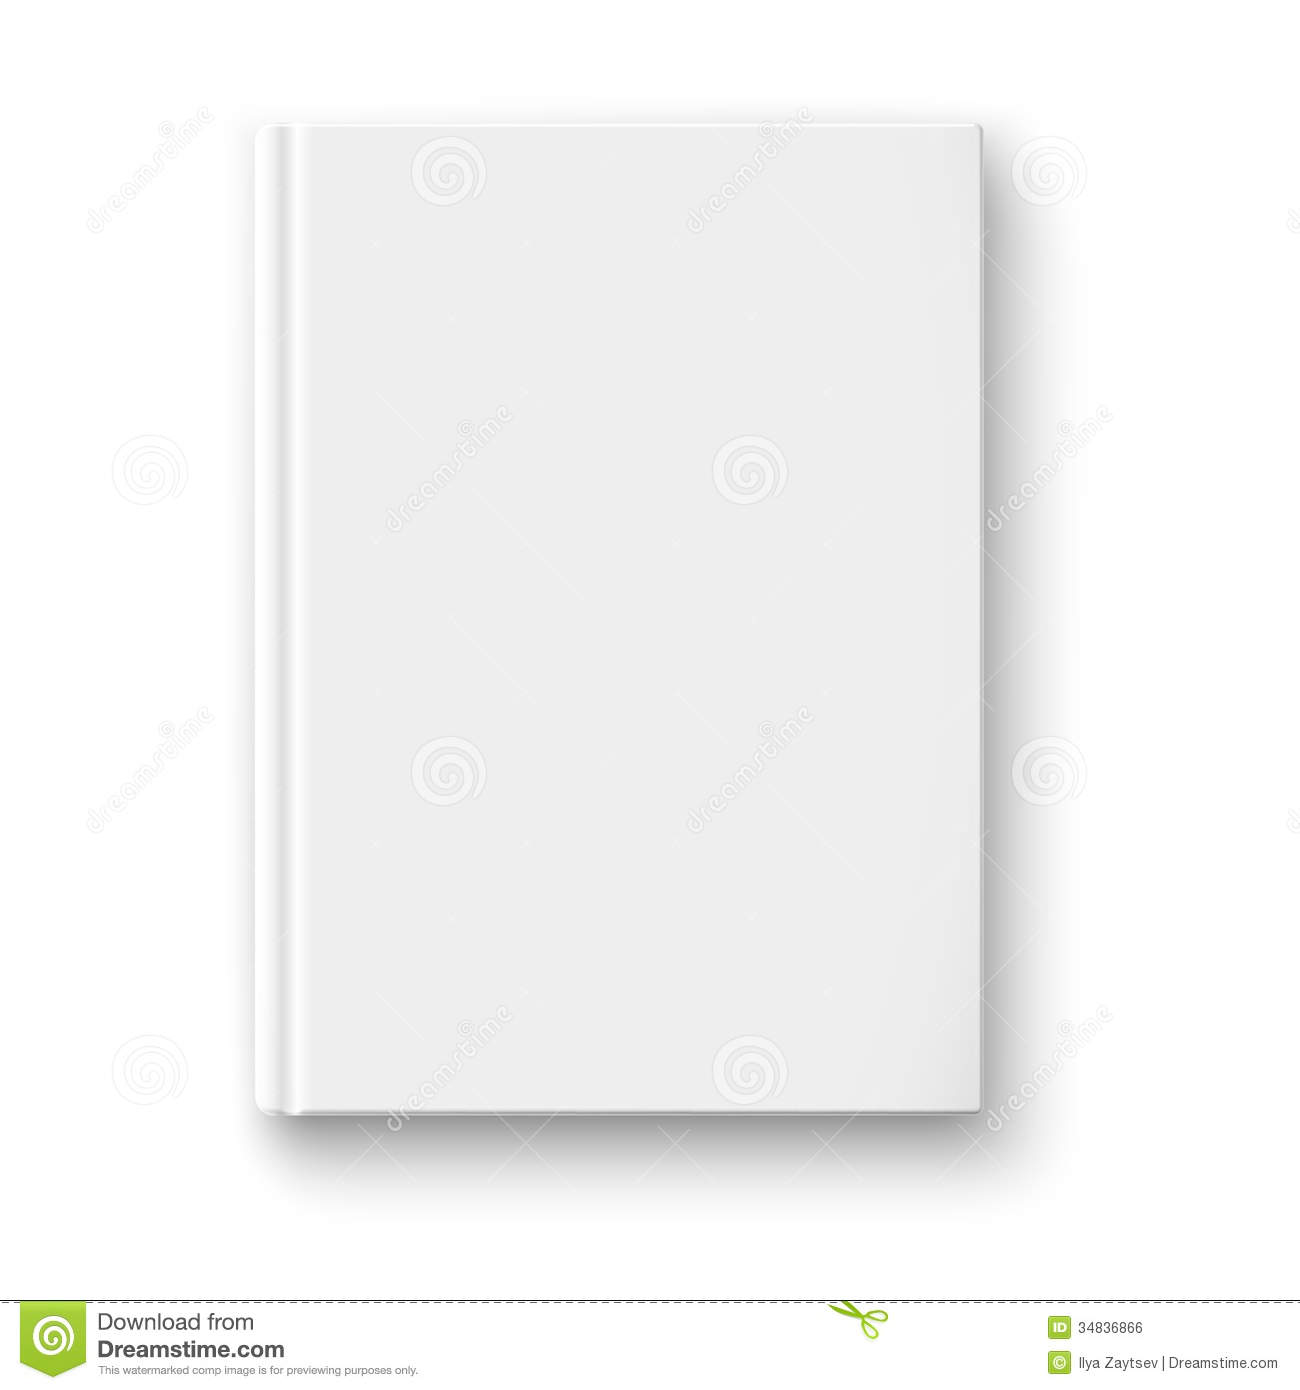 blank book template with soft shadows illustration 34836866 megapixl